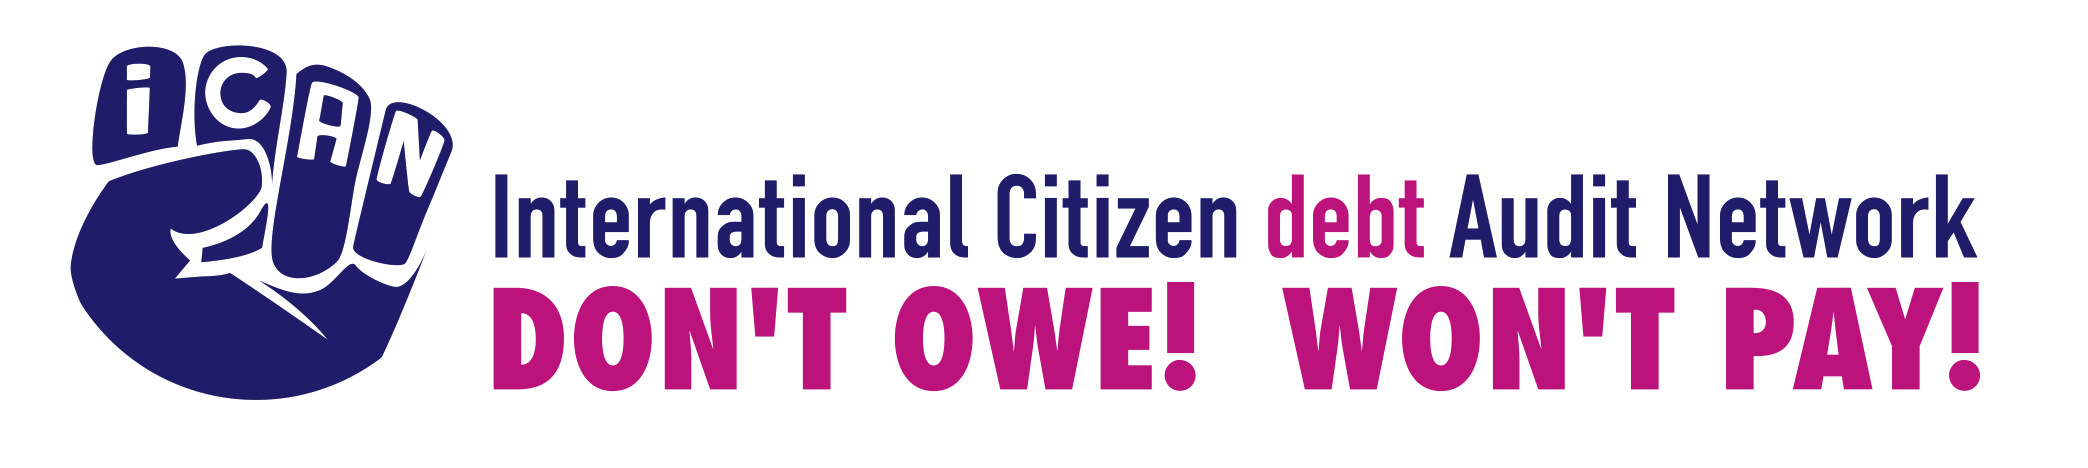 ICAN &#8211; International Citizen debt Audit Network